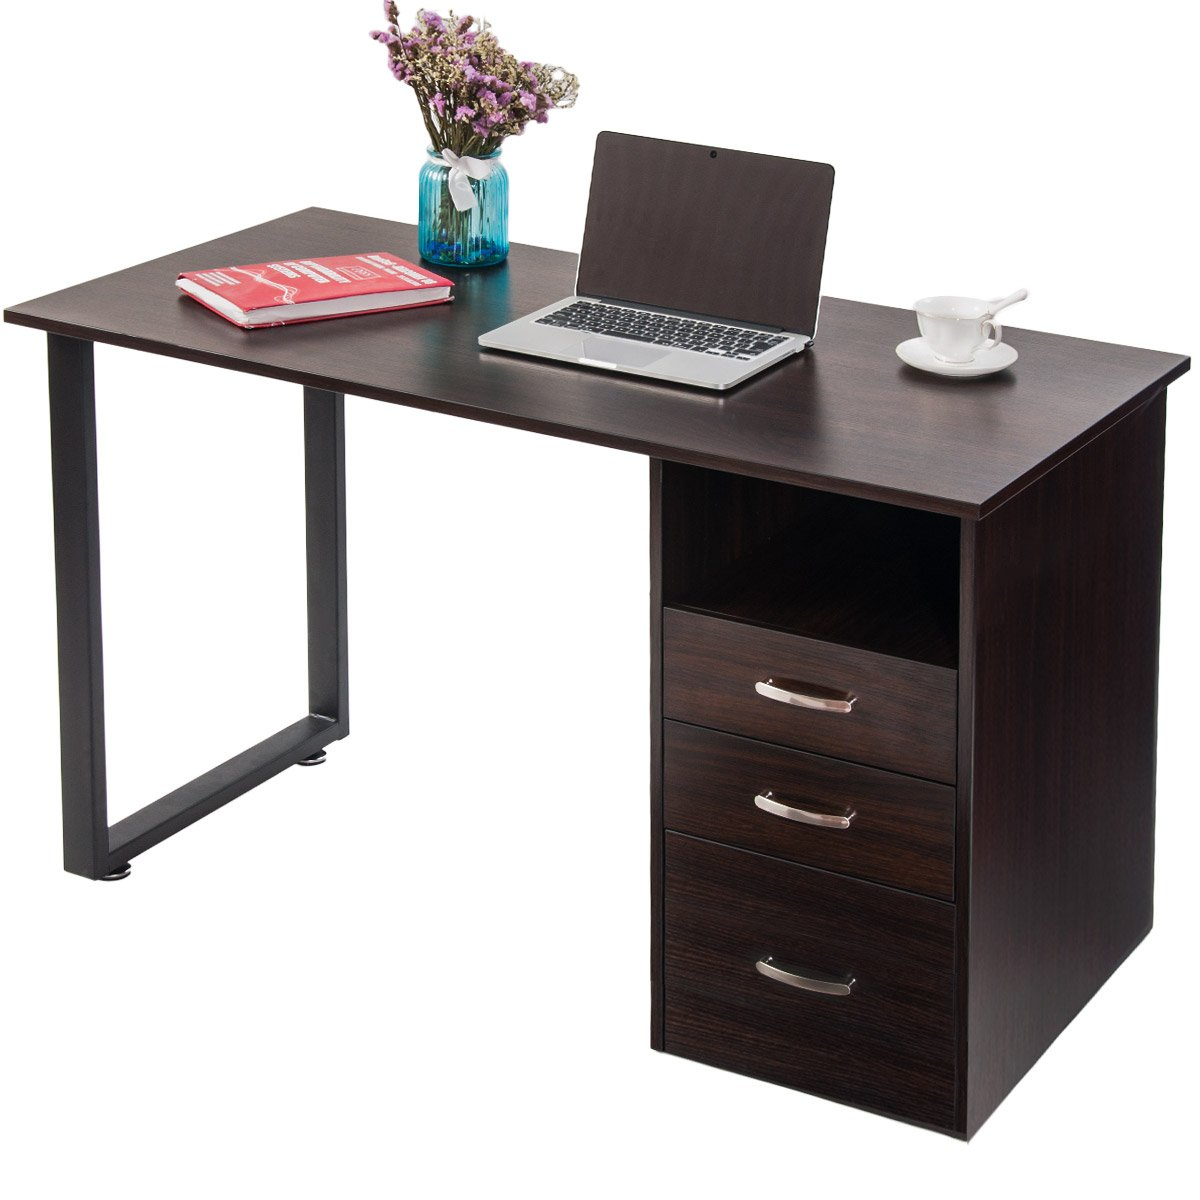 Merax Modern Simple Design Computer Desk Table Workstation with Cabinet and Drawers for Home & Office (Espresso)